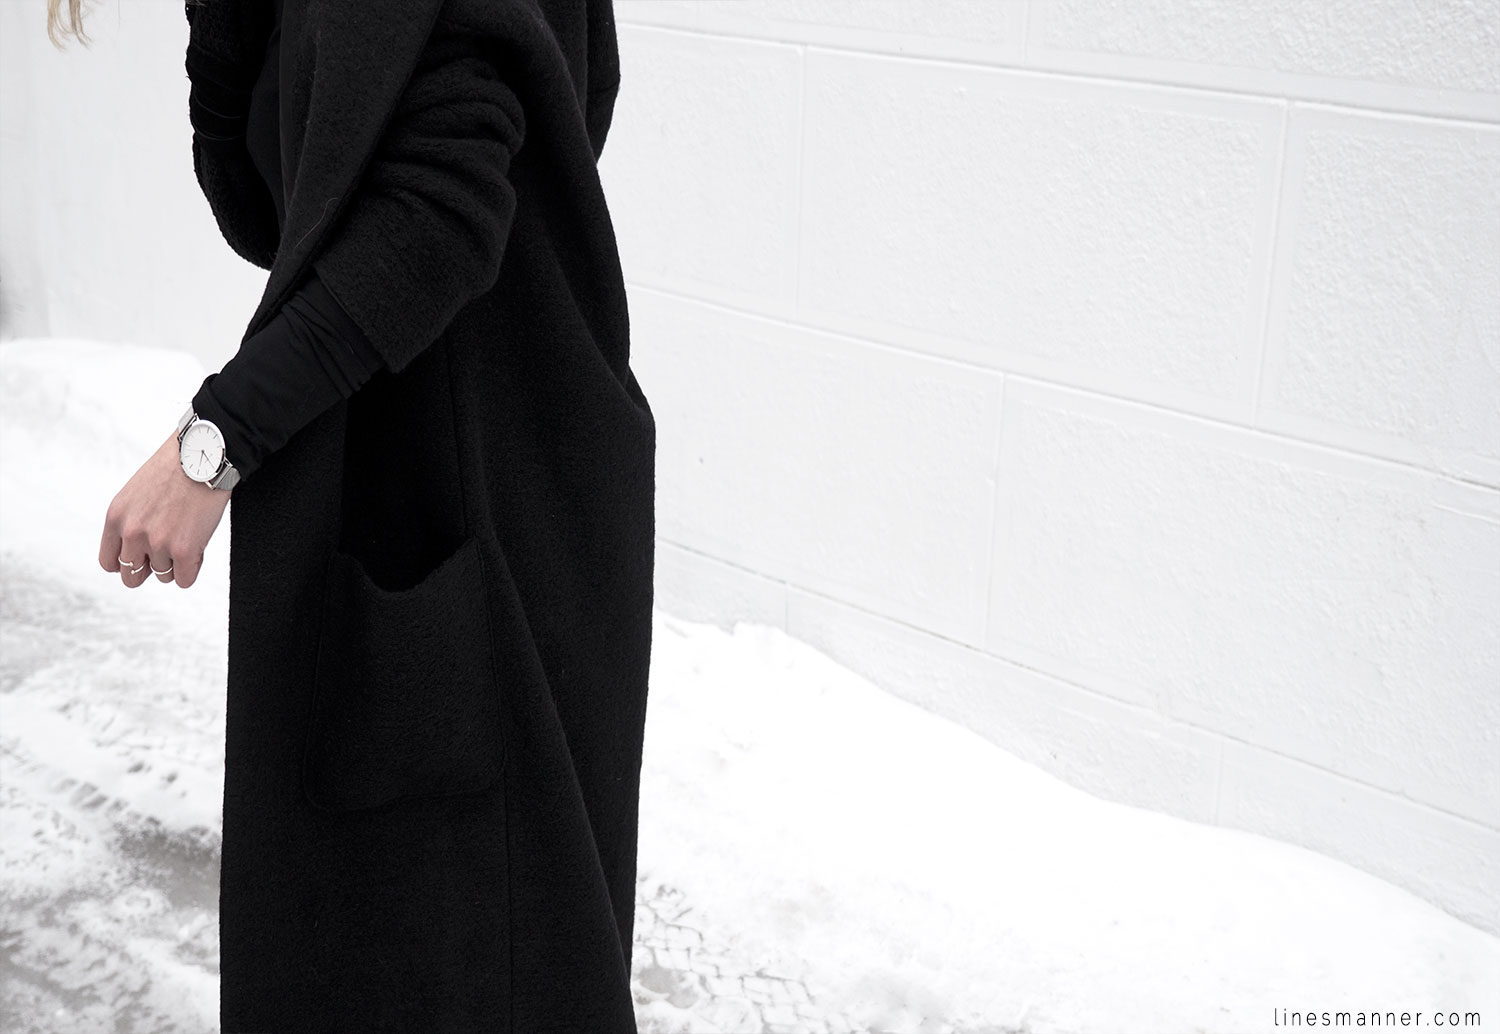 Lines-Manner-All_black_everything-monochrome-essentials-oversize-fit-textures-minimal-details-basics-staples-kayering-bundled-enveloped-silver-leather-17